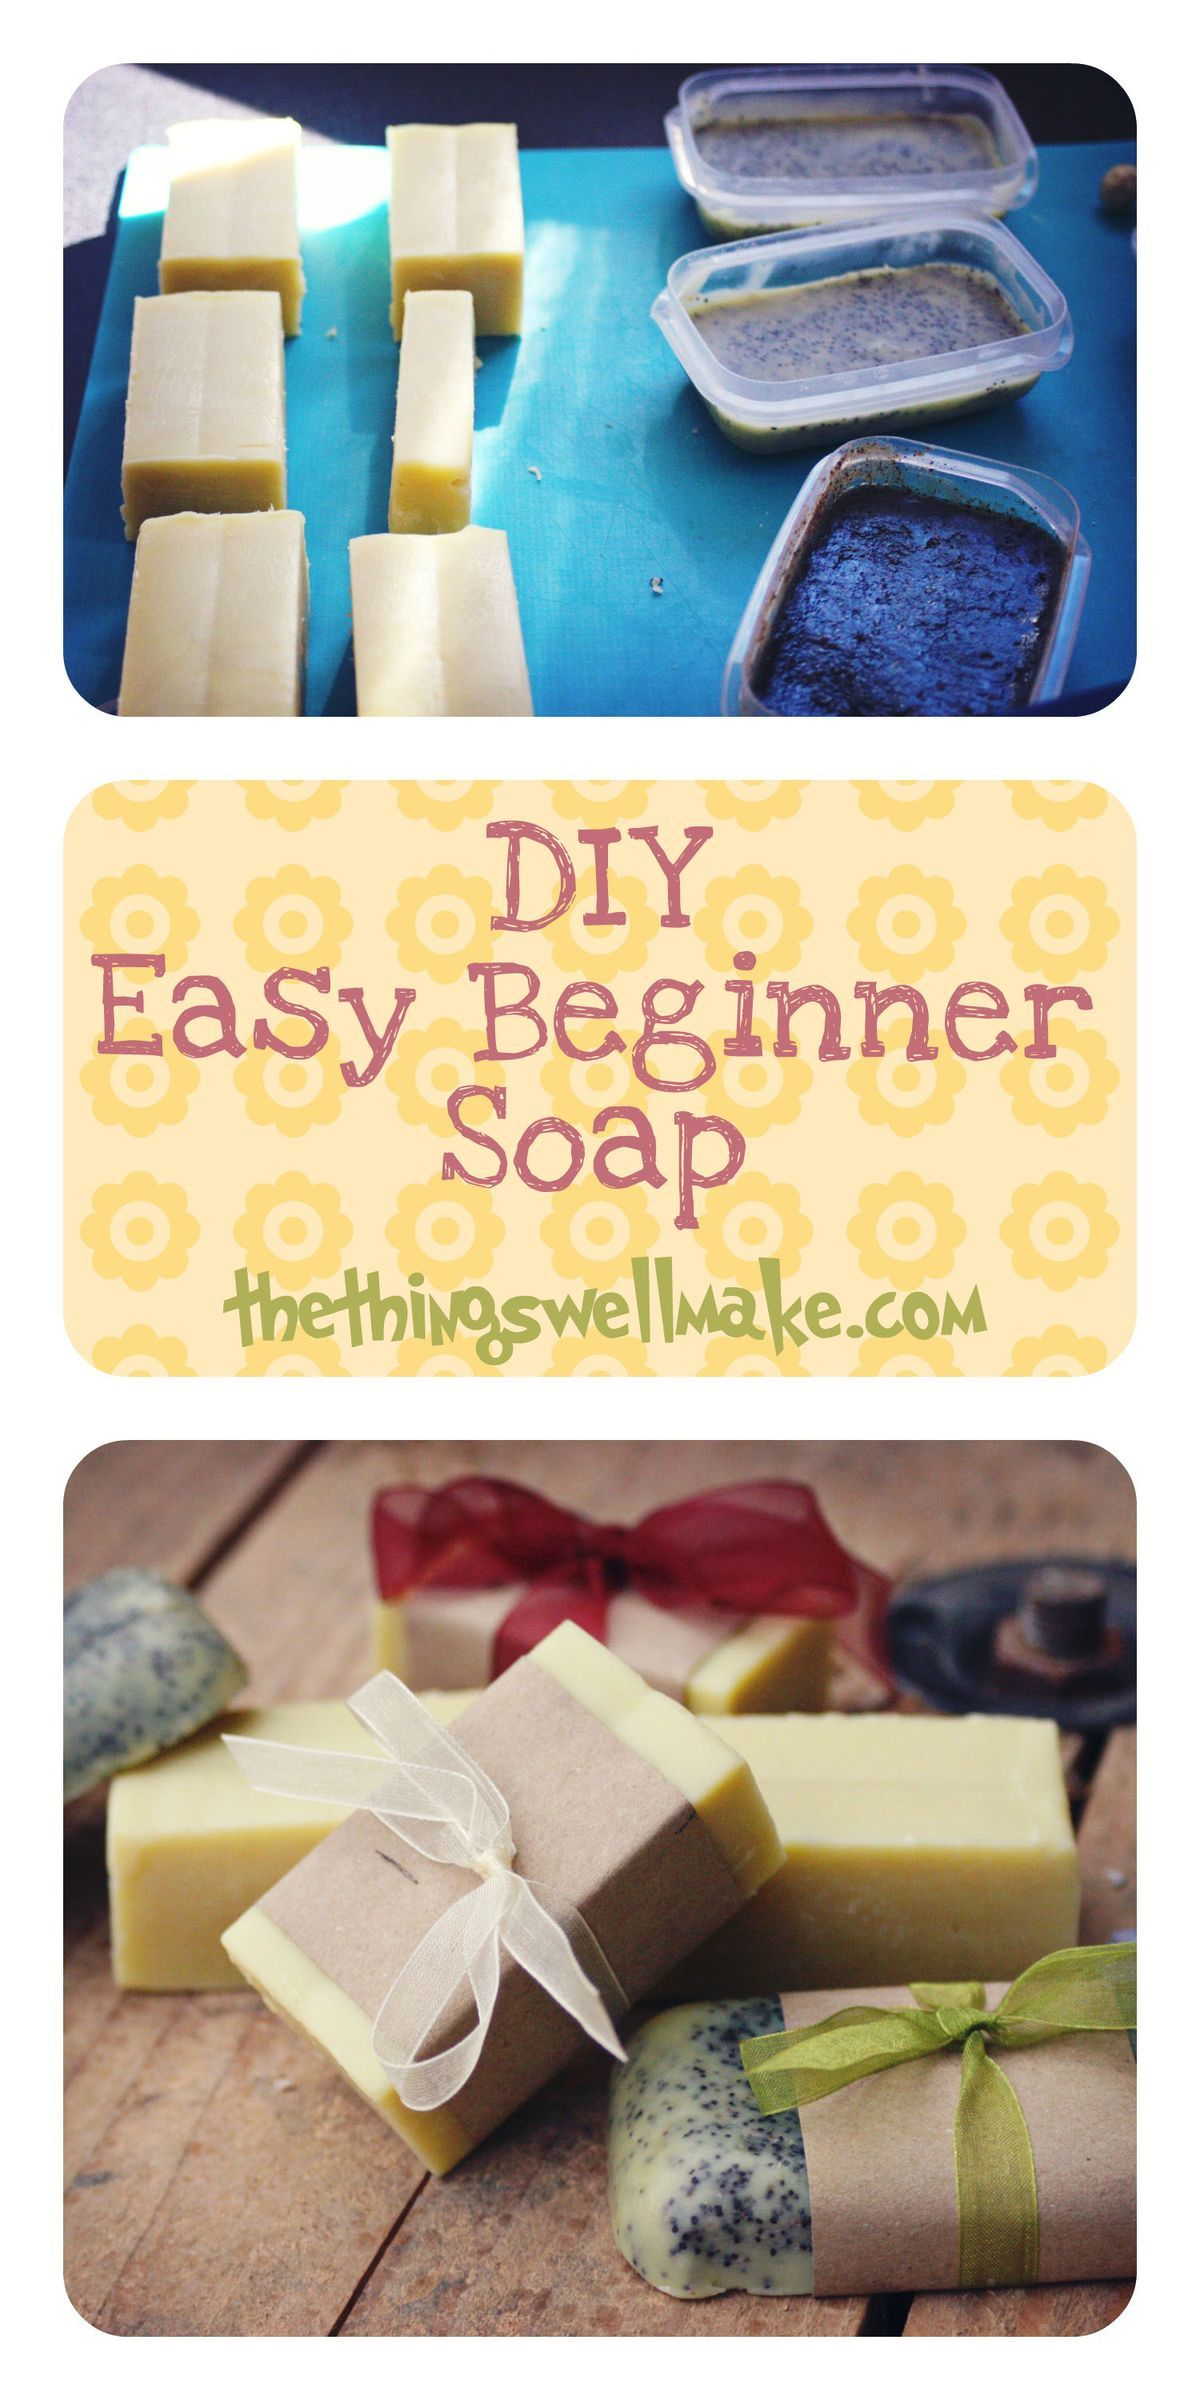 11 Easy DIY Homemade Soap Recipes | Crafting \u0026 being Ambitious ...